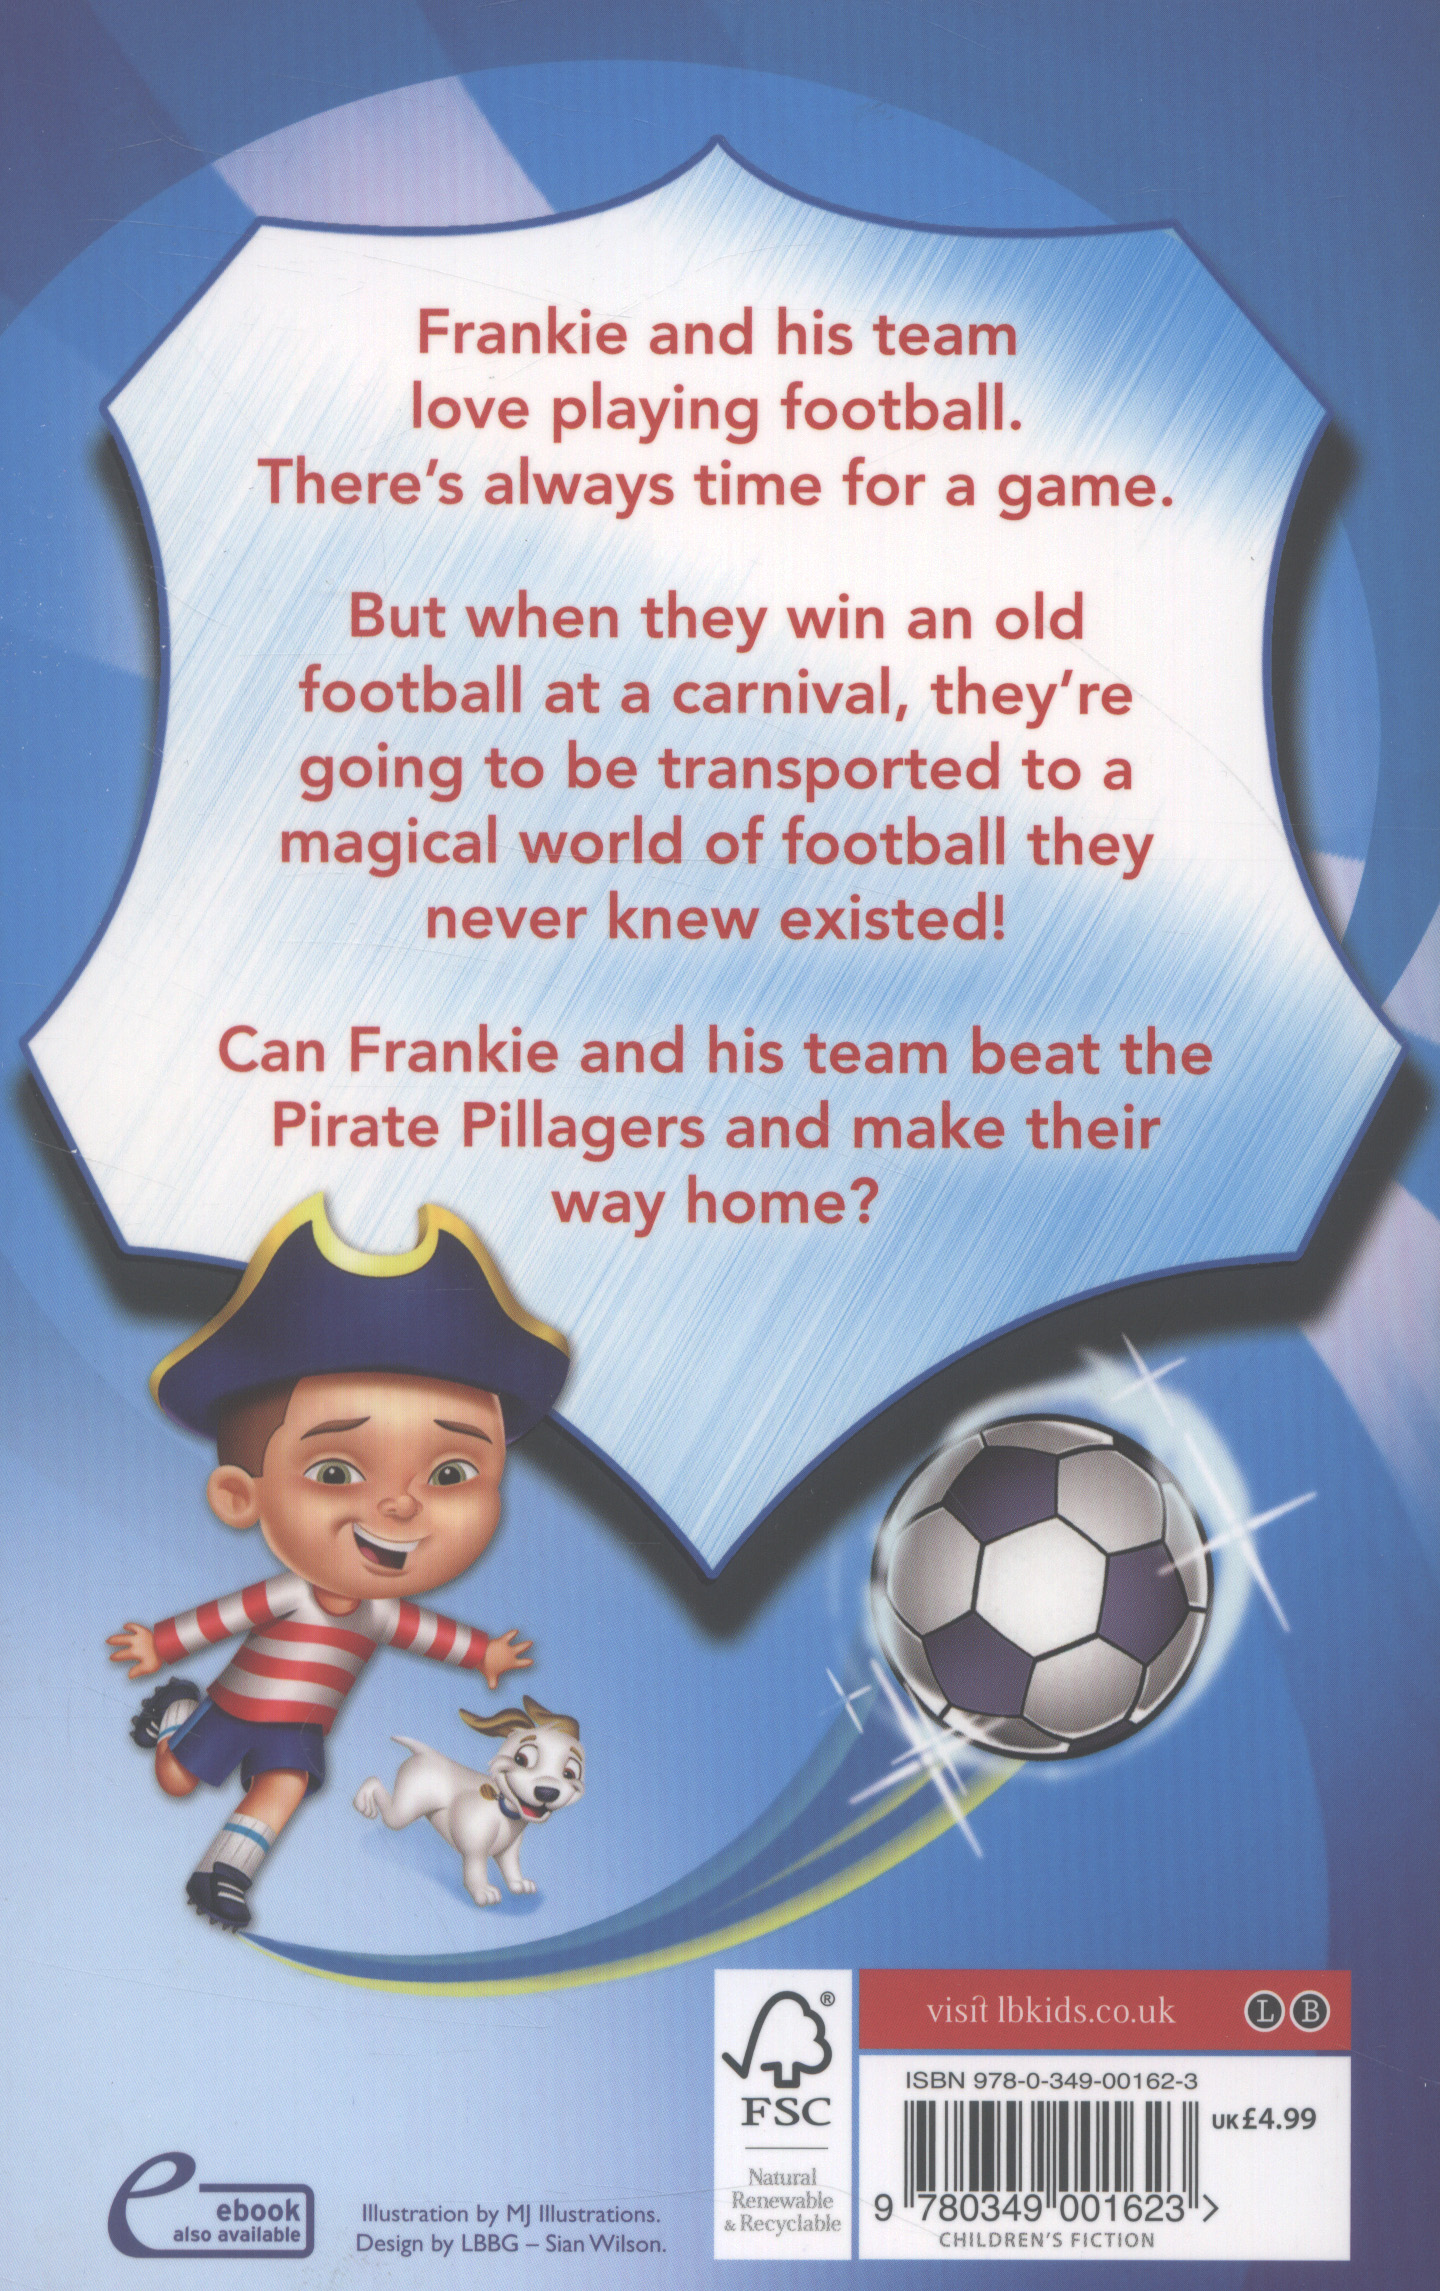 Frankie vs the Pirate Pillagers